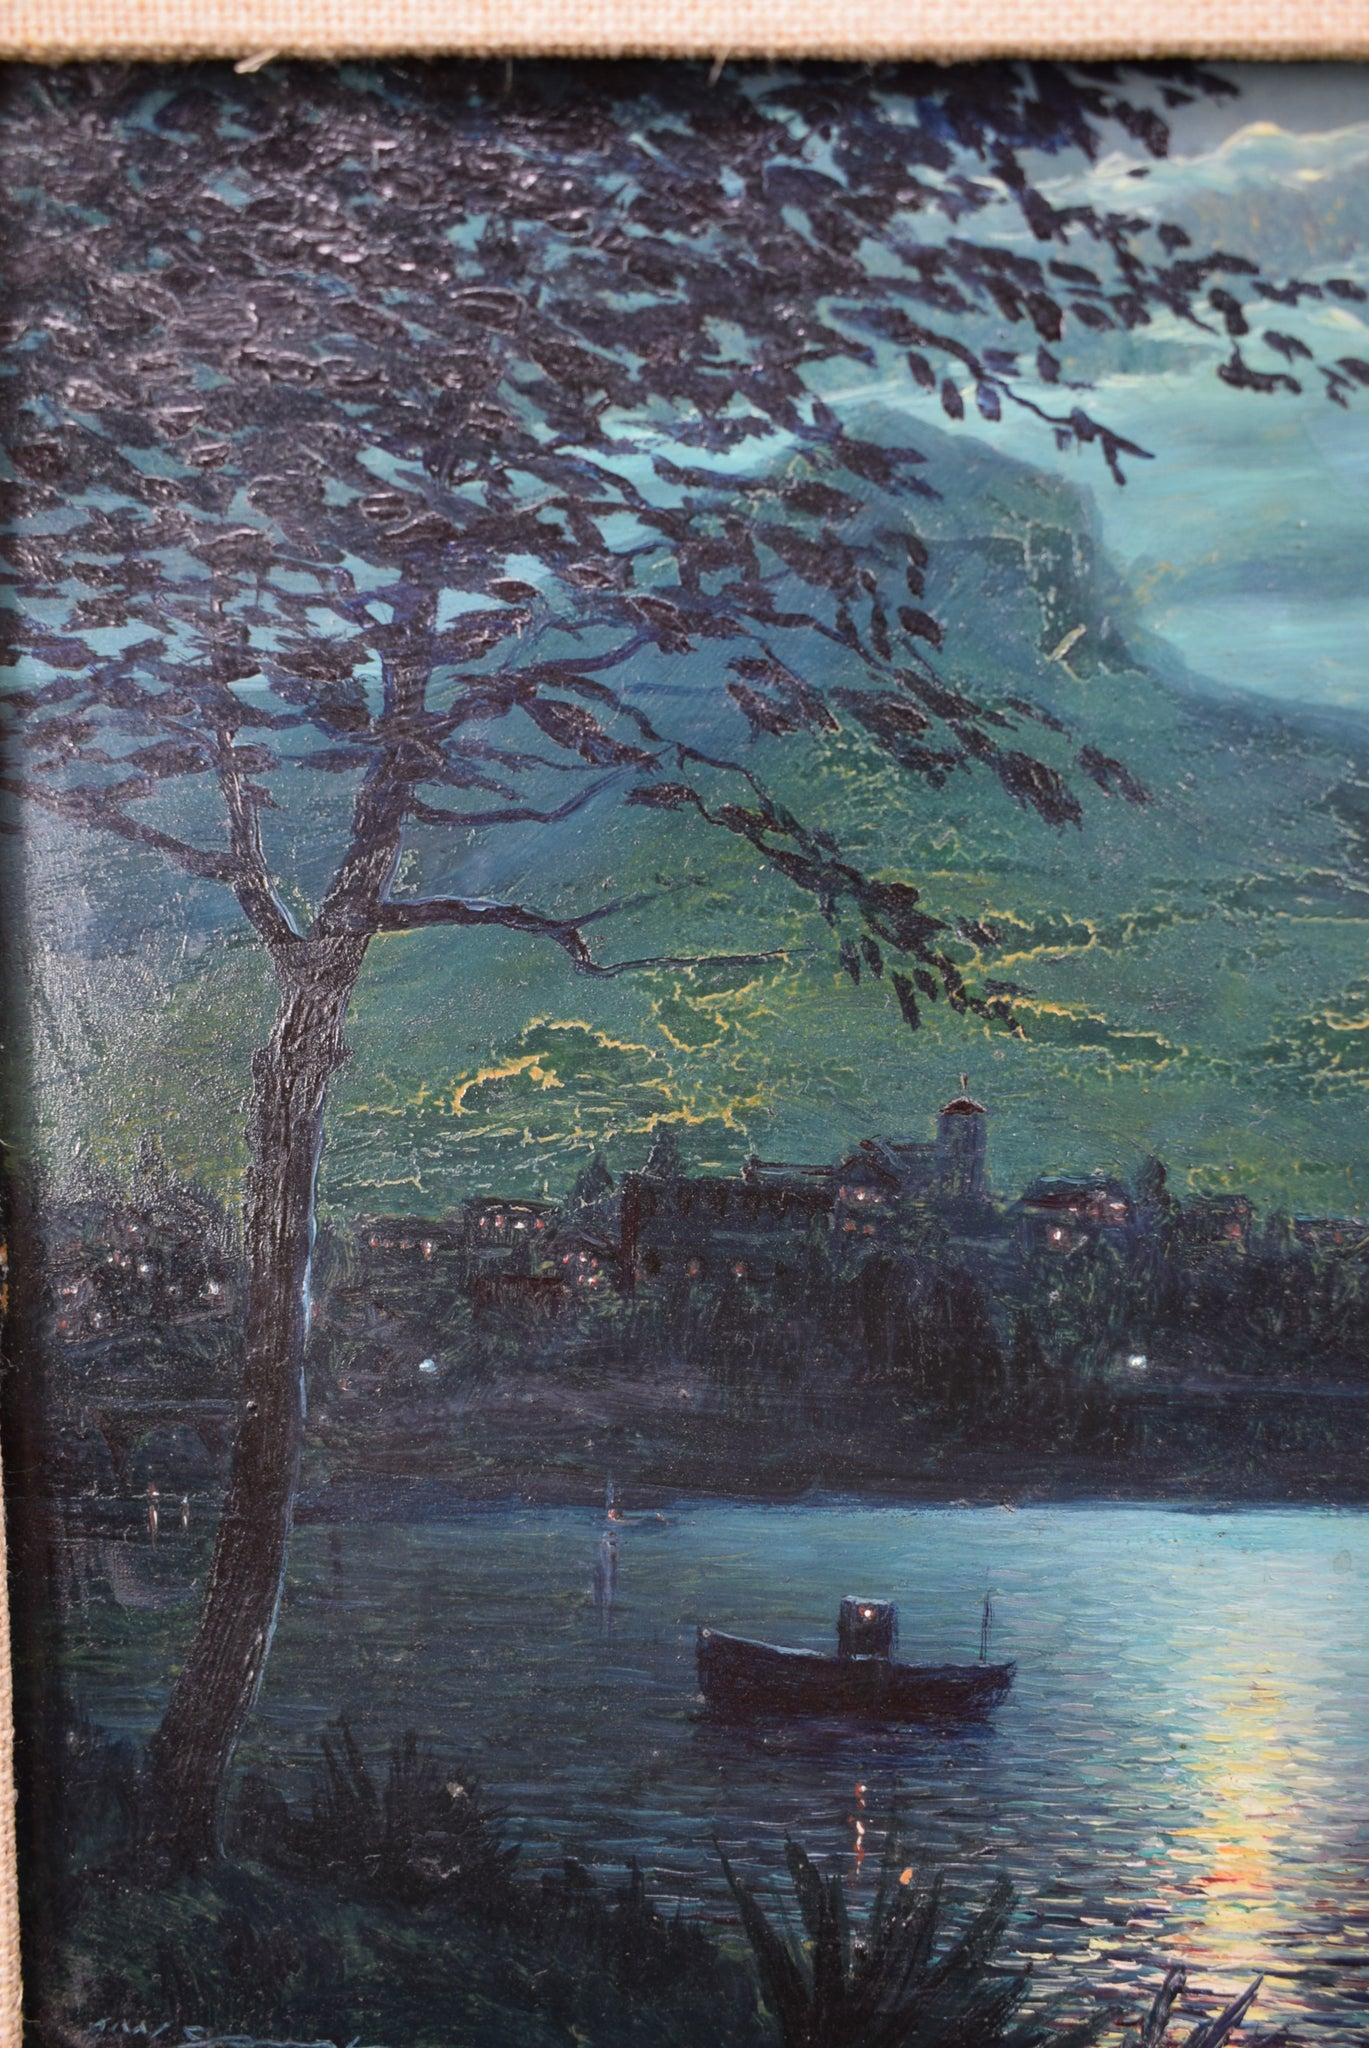 AL W Sousloff Oil Painting - Charmantiques